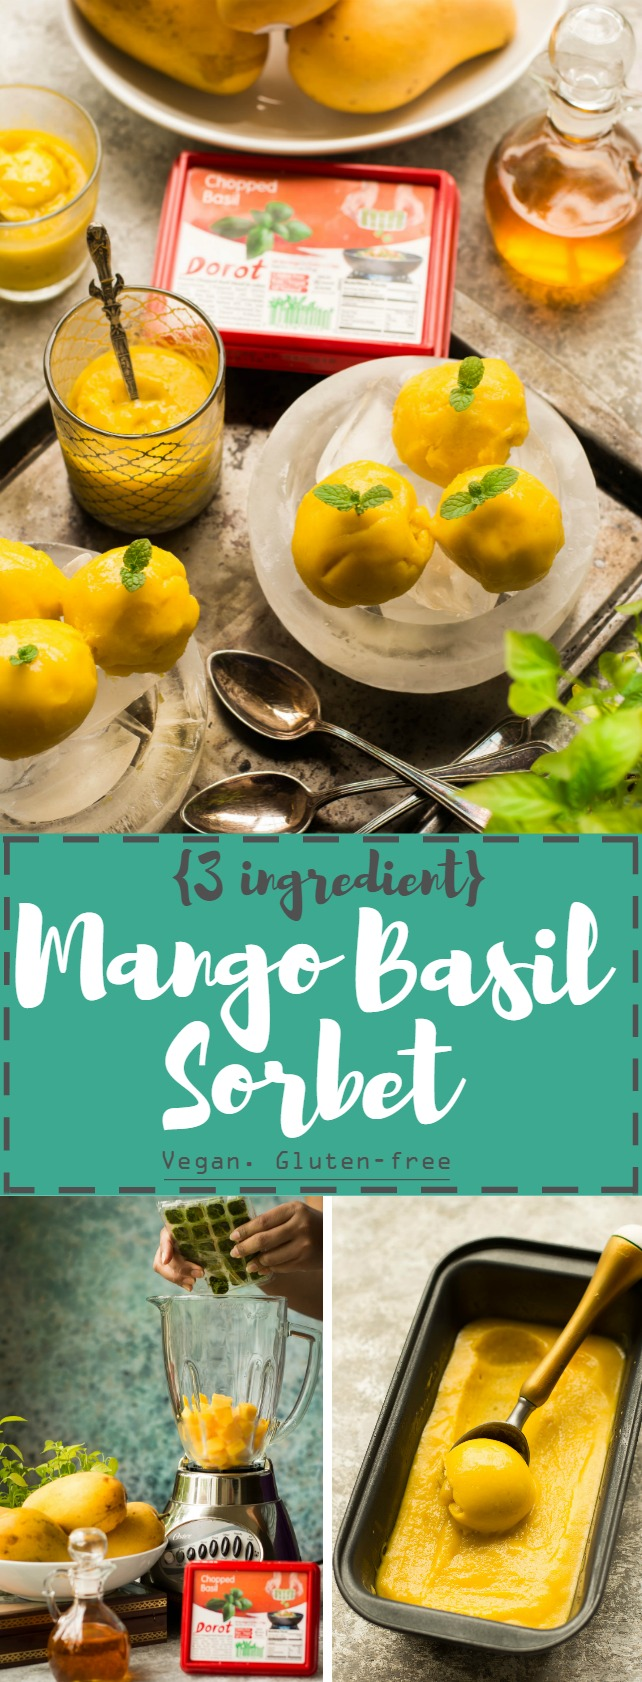 This Quick 'n' Easy Mango Basil Sorbet needs just 3 ingredients and is near-instant (ready to eat in less than an hour, thanks to Dorot Frozen herbs!) - Vegan + Gluten-Free! #ad #Dorot